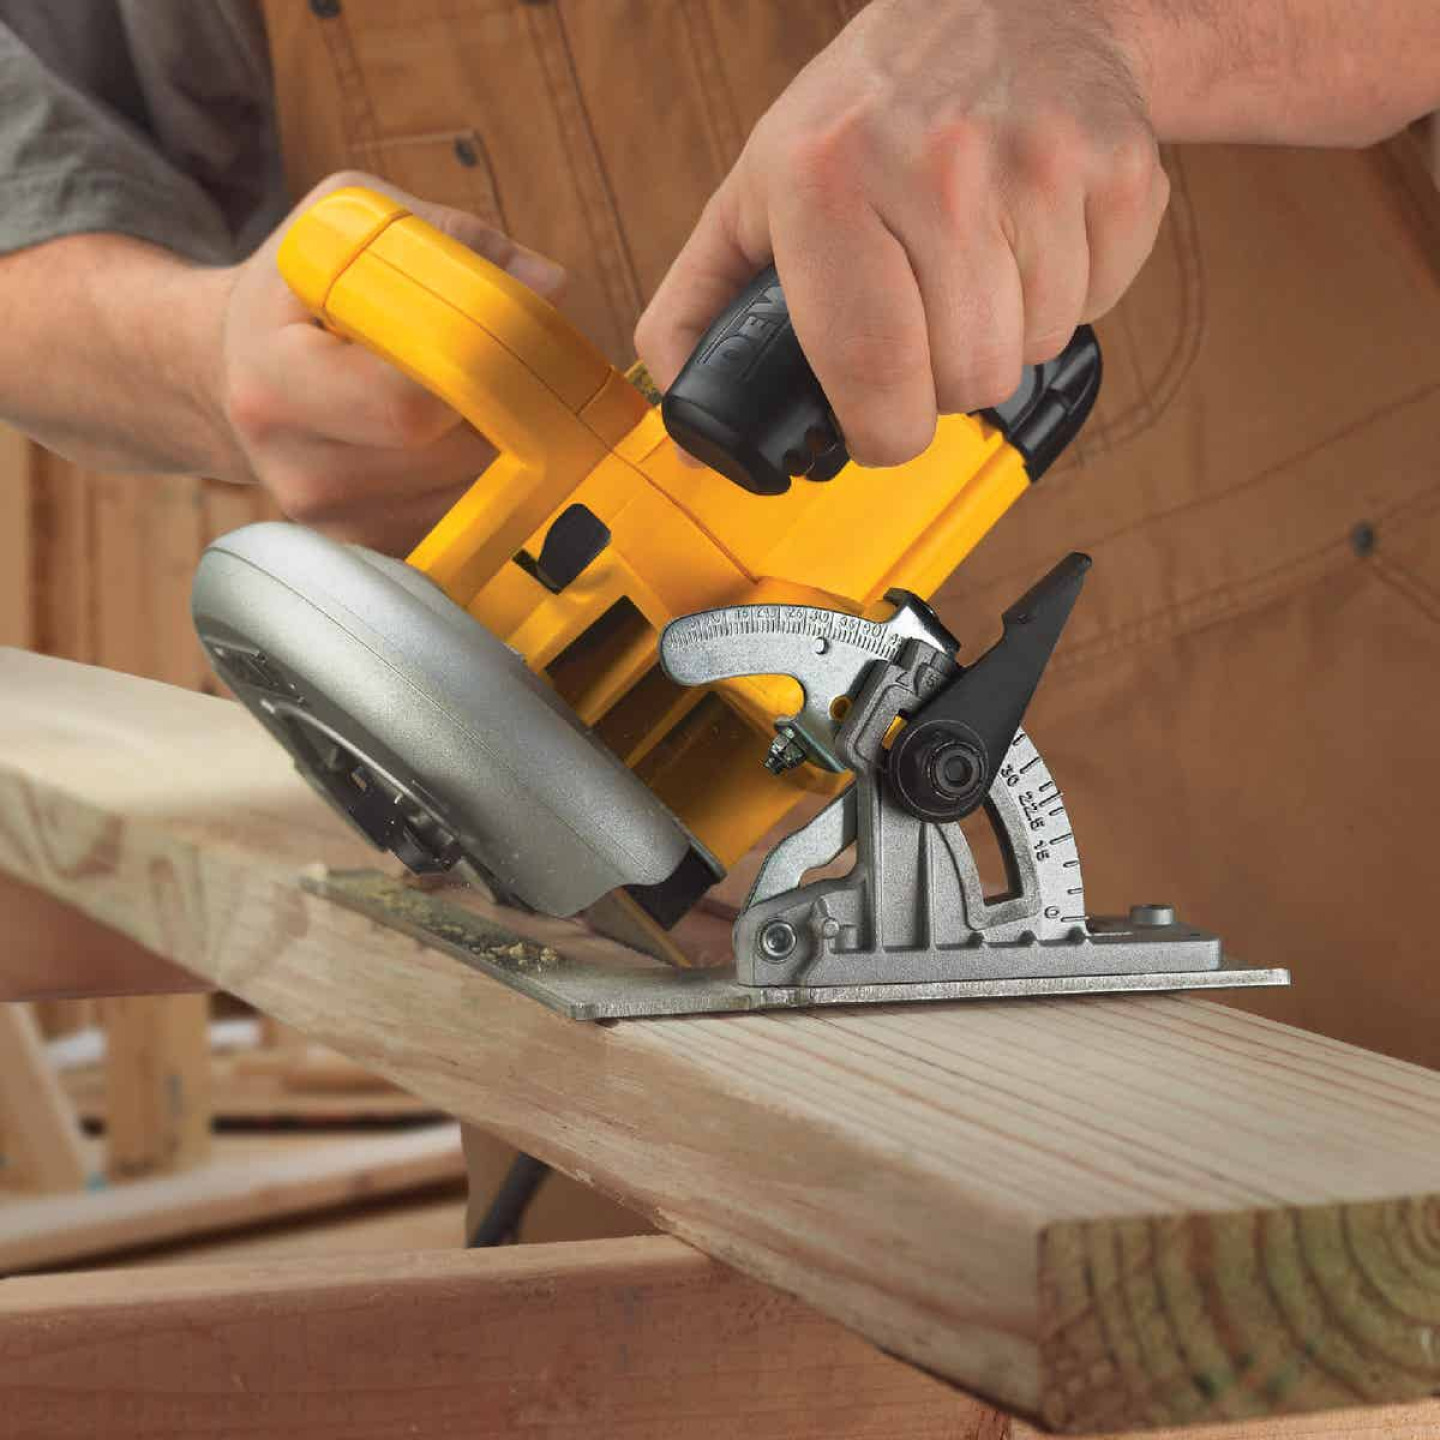 DeWalt 7-1/4 In. 15-Amp Lightweight Circular Saw Image 3